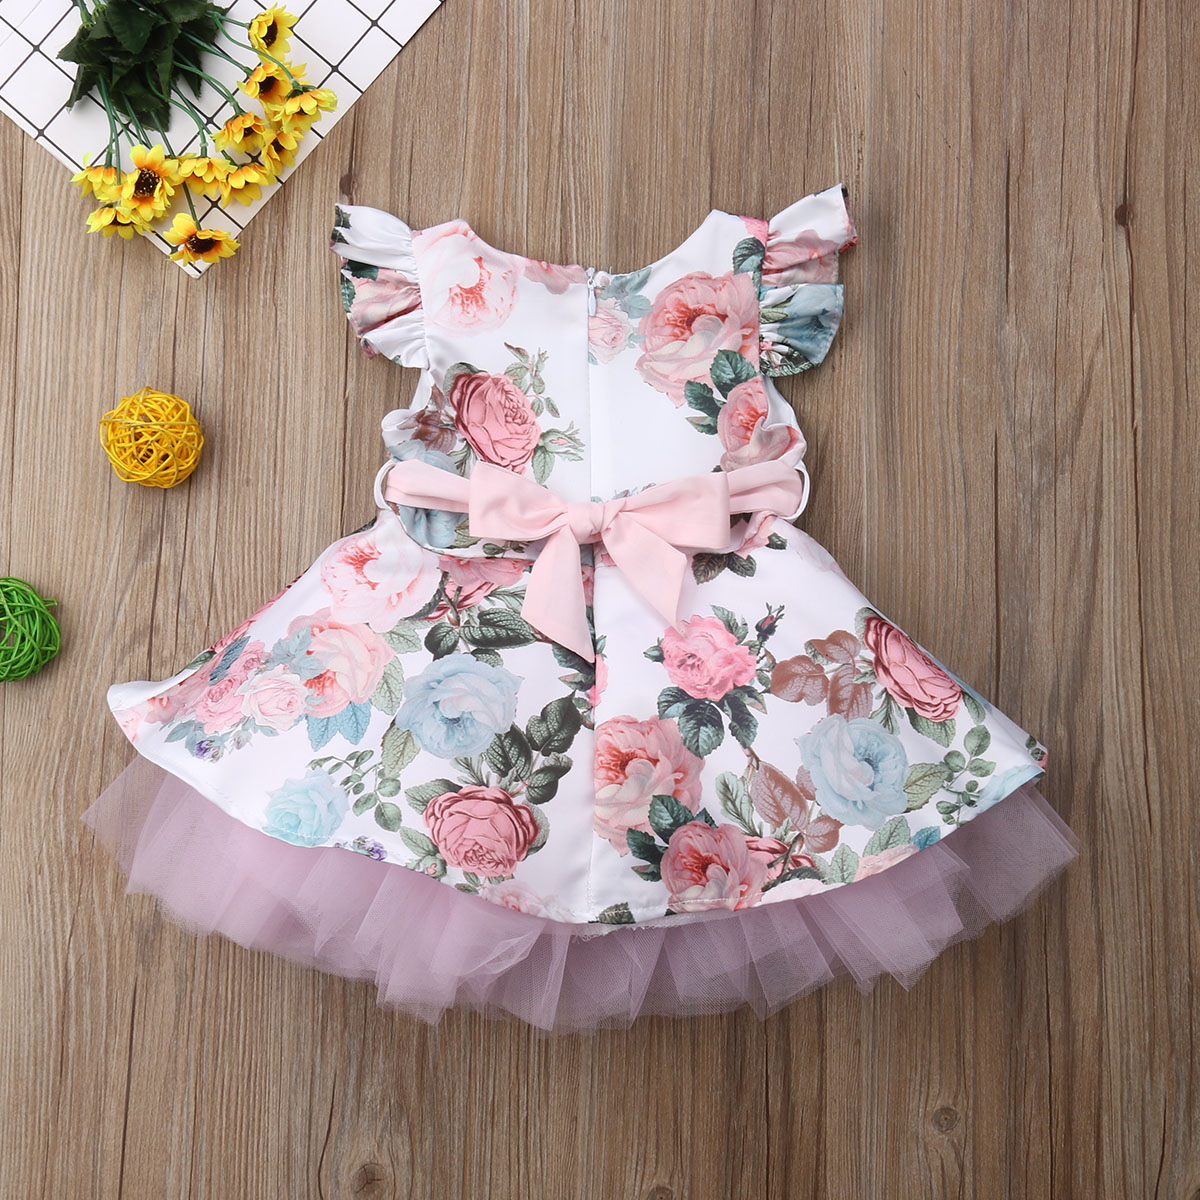 Dress Clothing Tutu Flower Lace Party Wedding Girls Toddler Newborn Princess Summer